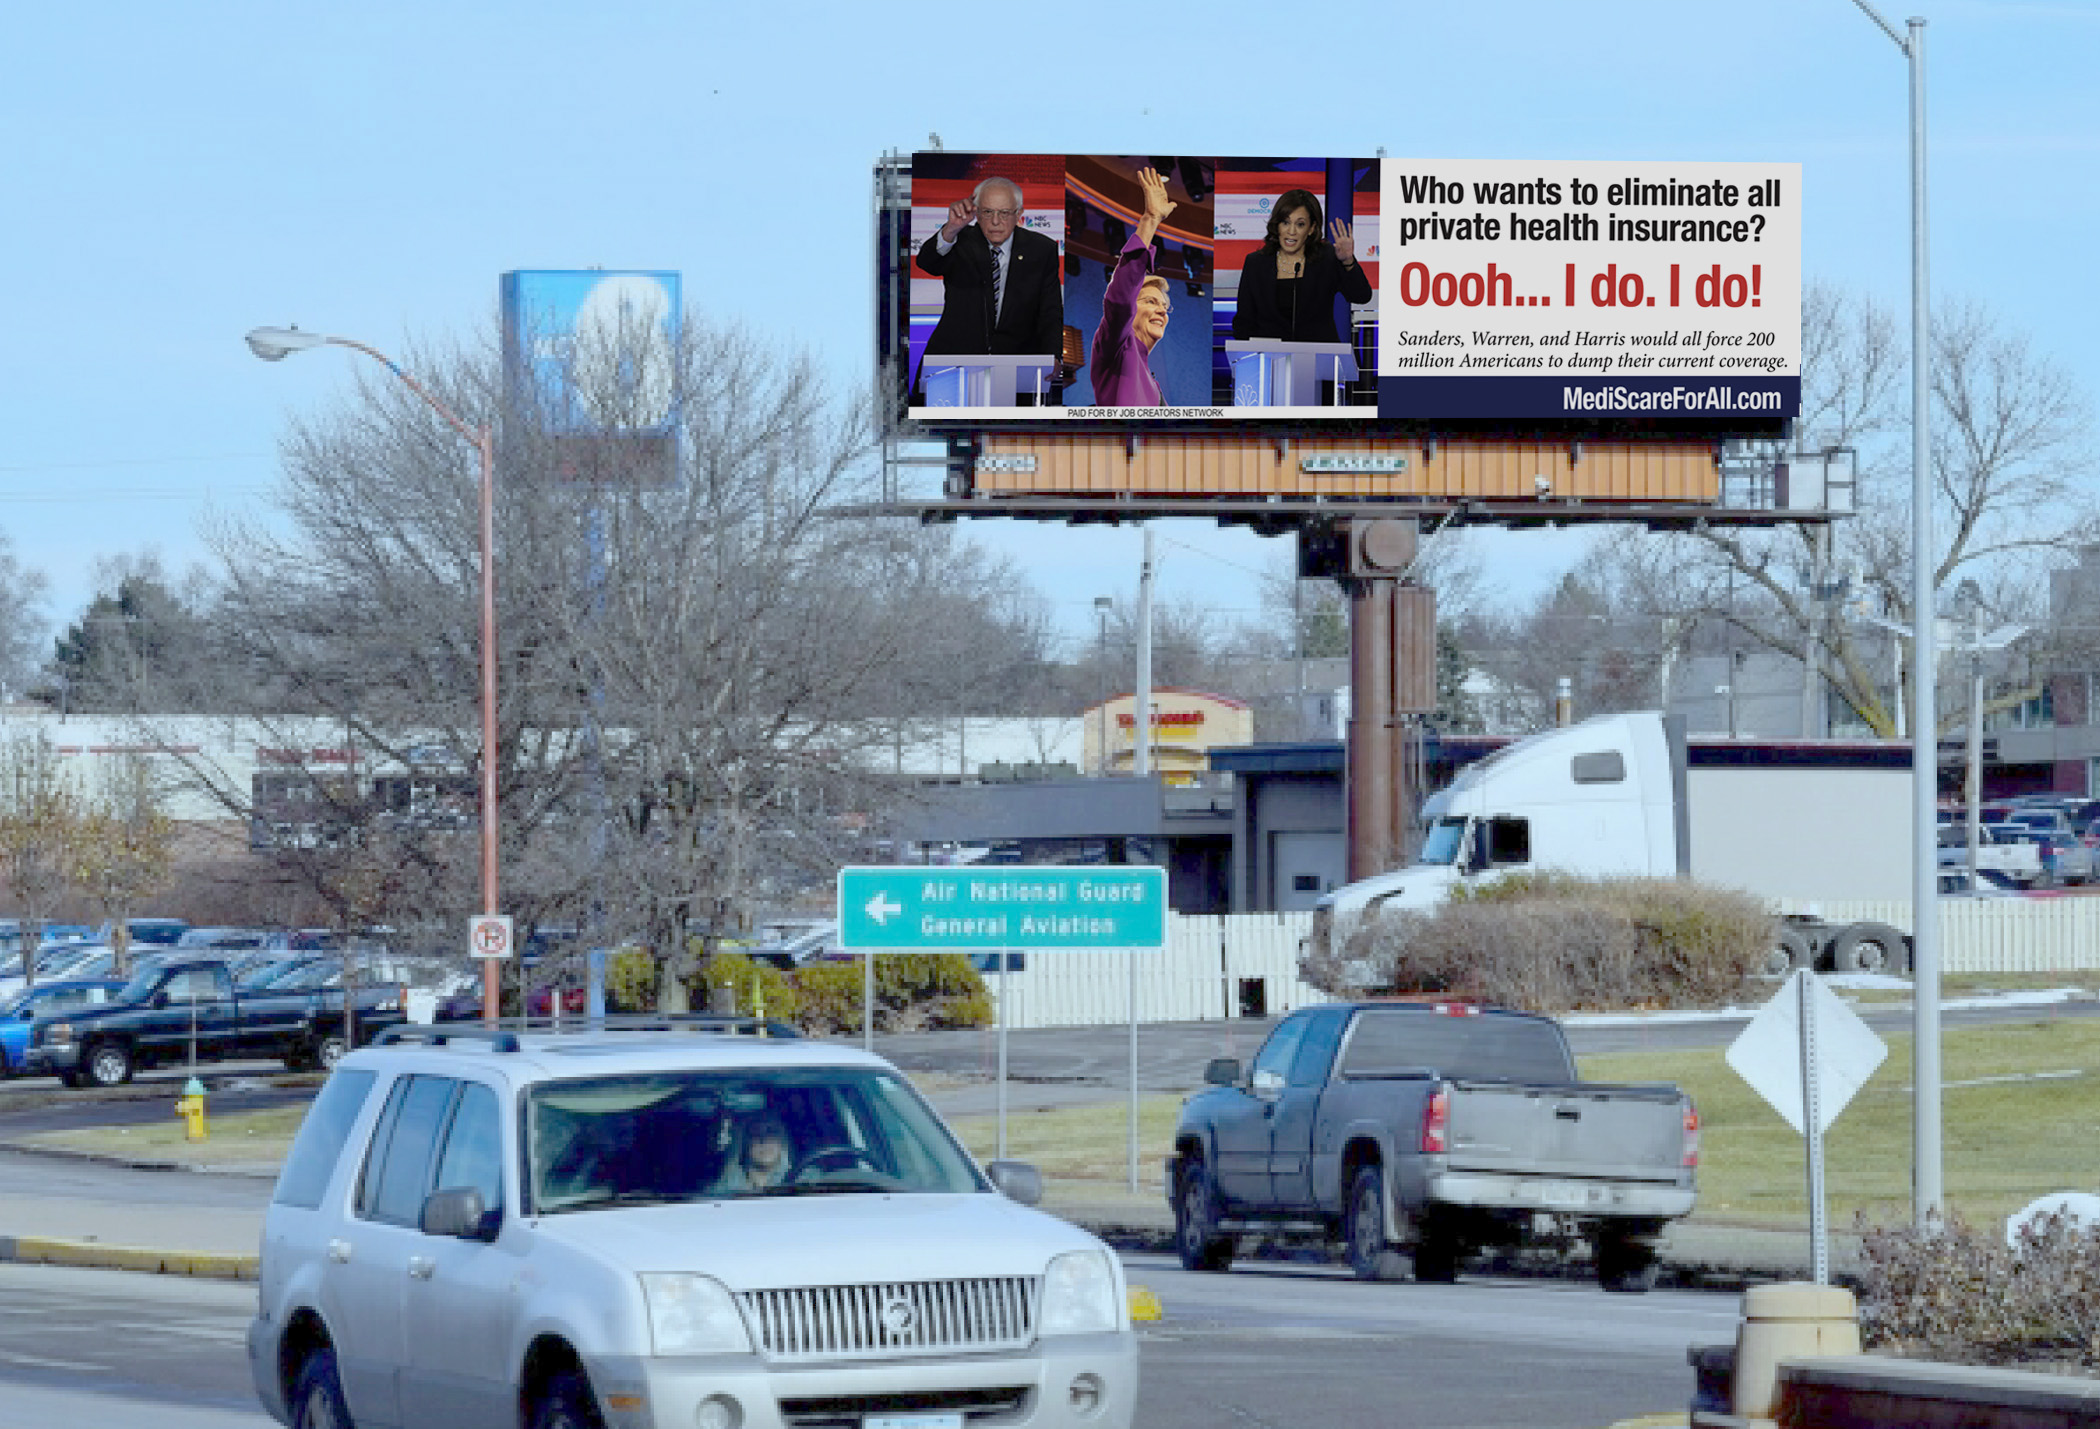 Job Creators Network Puts Up Billboard in Des Moines Attacking